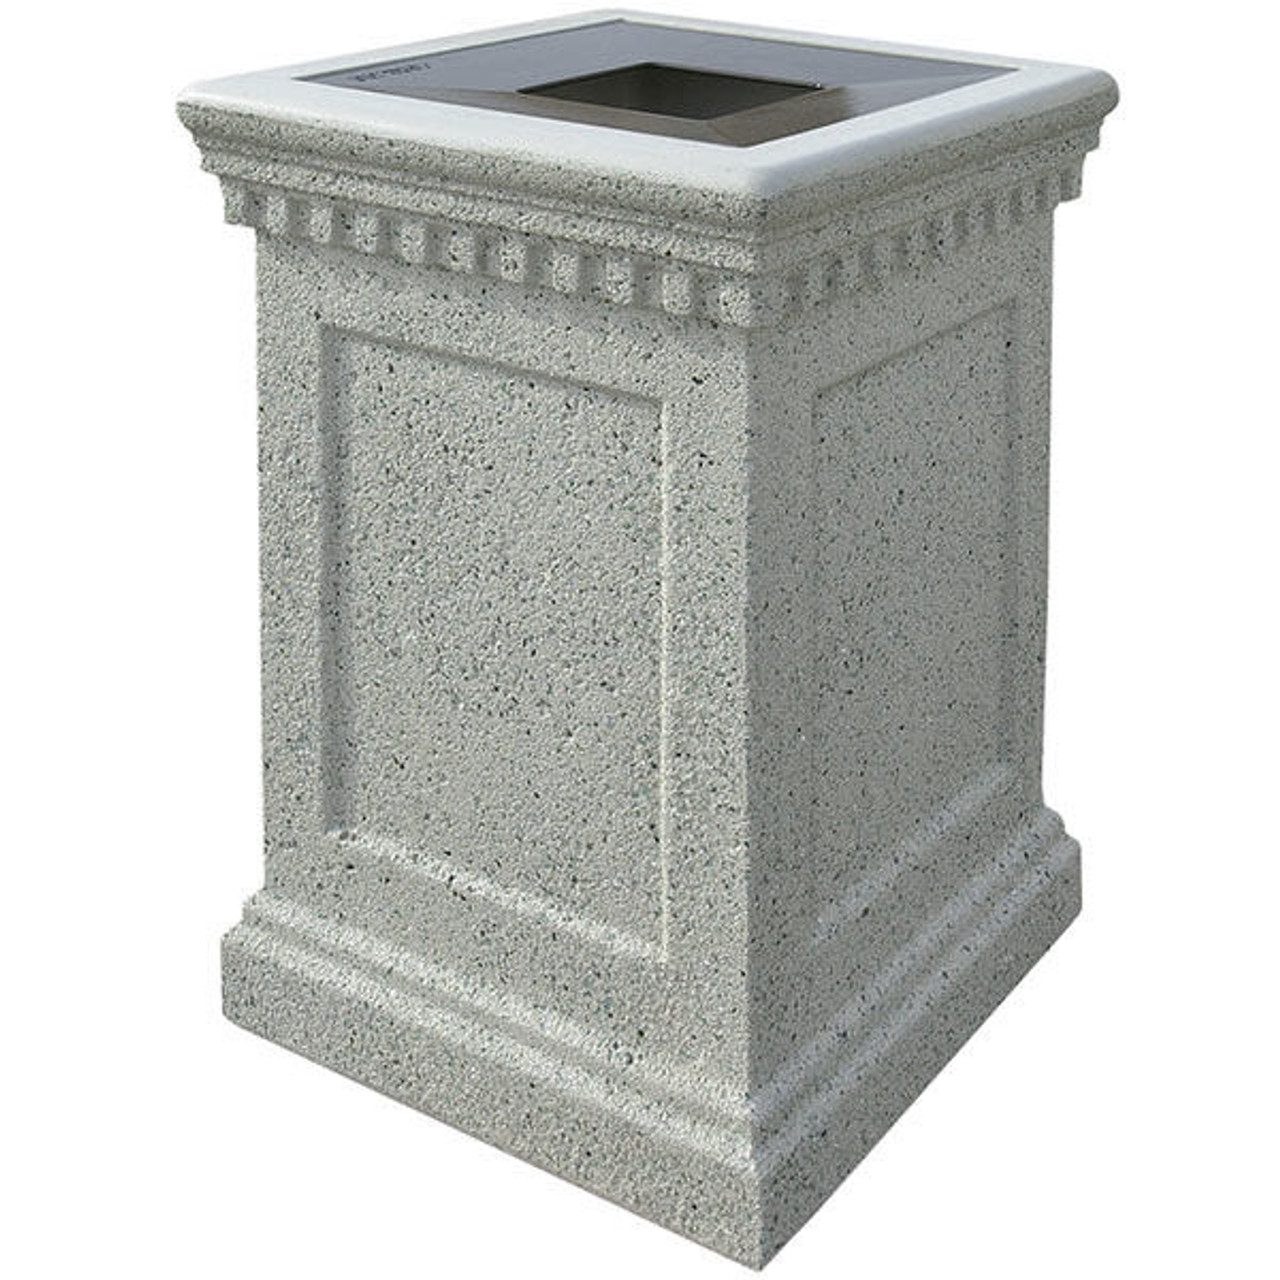 24 Gallon Concrete Pitch In Top Outdoor Waste Container TF1022 Weatherstone Gray